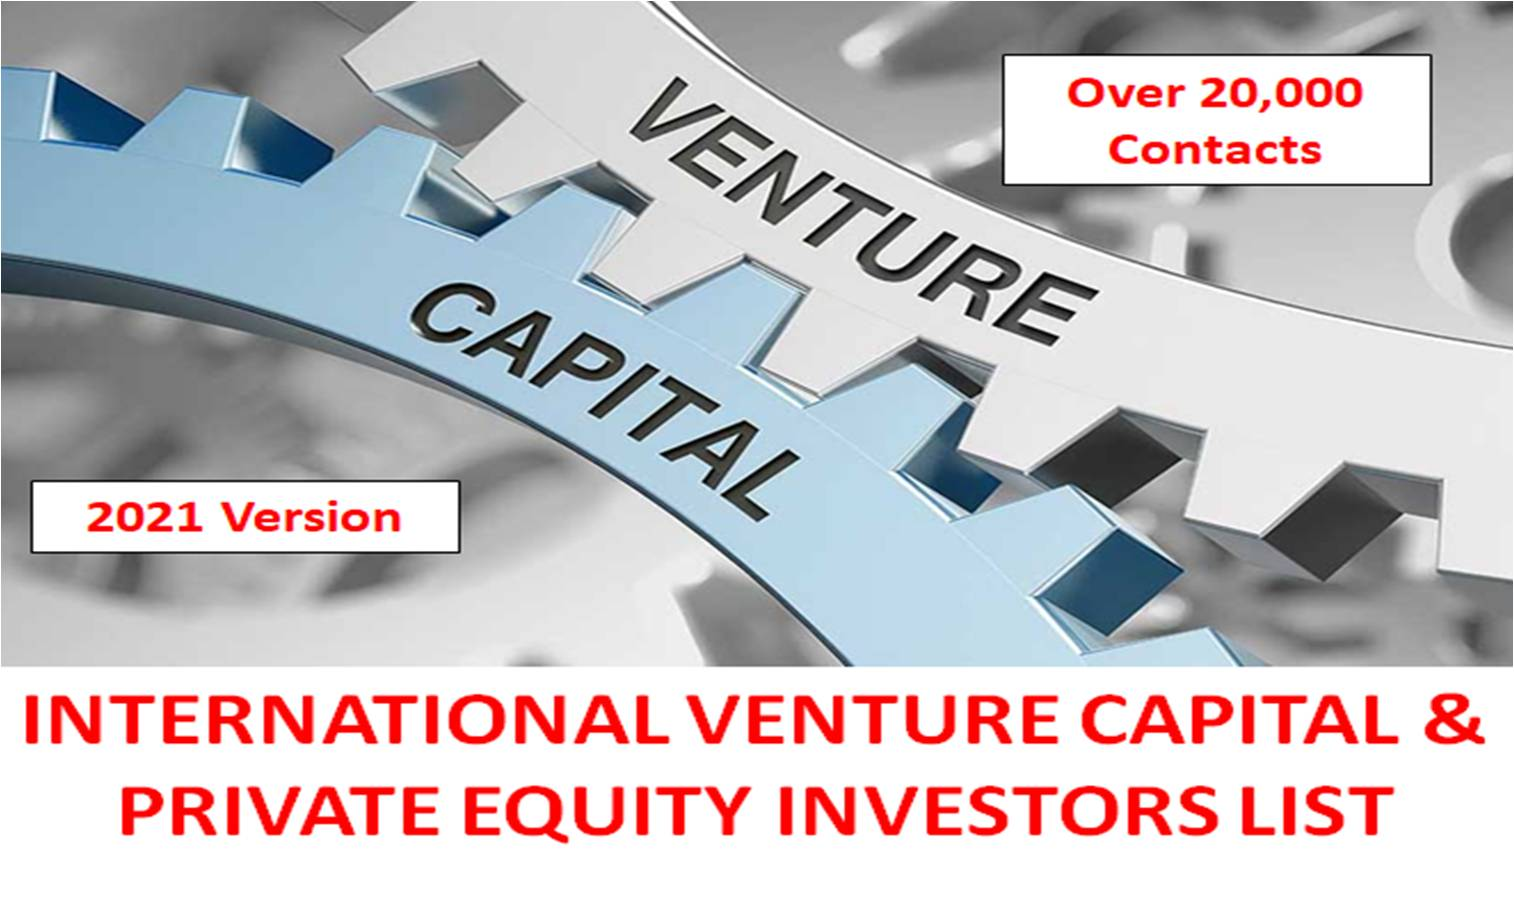 International Private Equity & Venture Capital Investors Contacts